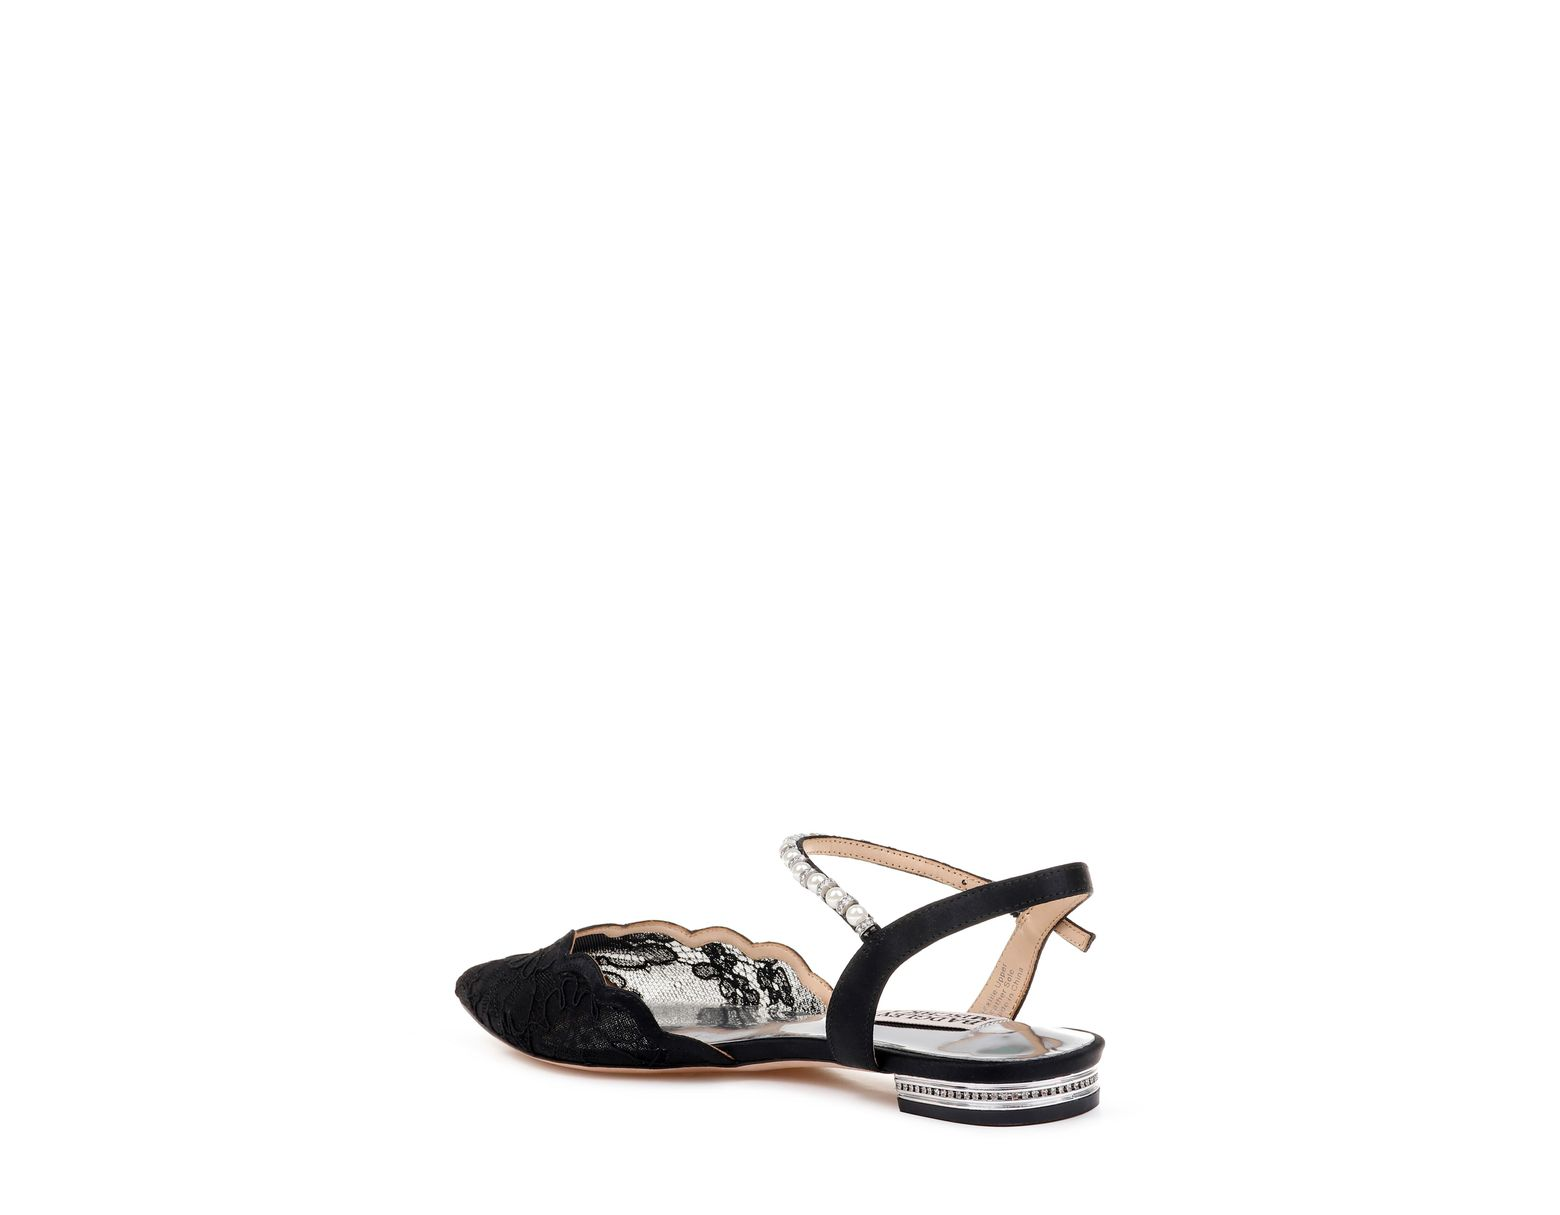 8b137b6571 Badgley Mischka Badgley Mischka Lennon Embellished Skimmer Flat in Black -  Lyst